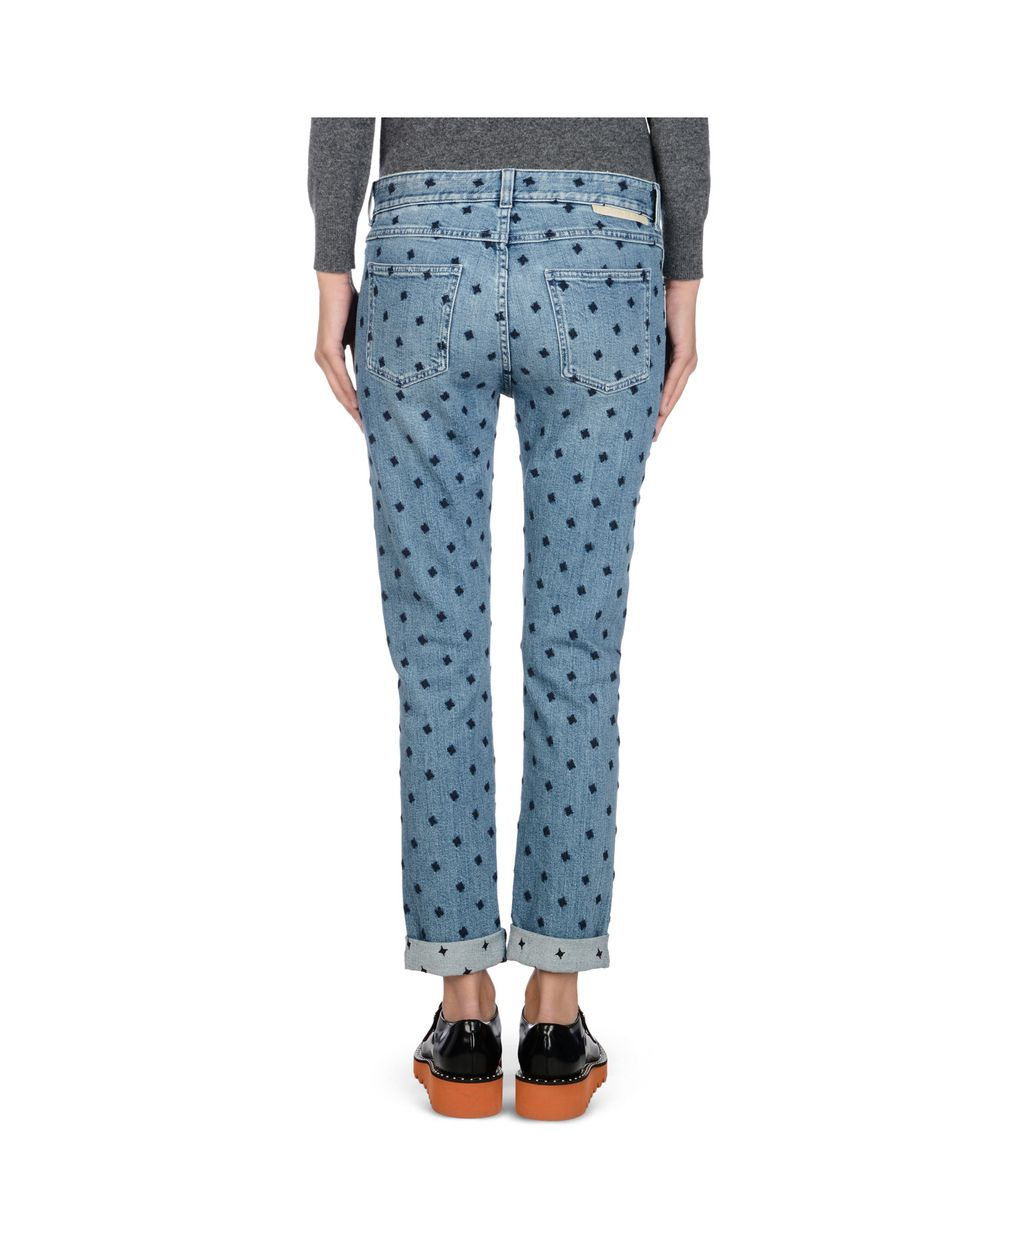 Blue Skinny Boyfriend Blue Star Jeans  - STELLA MCCARTNEY